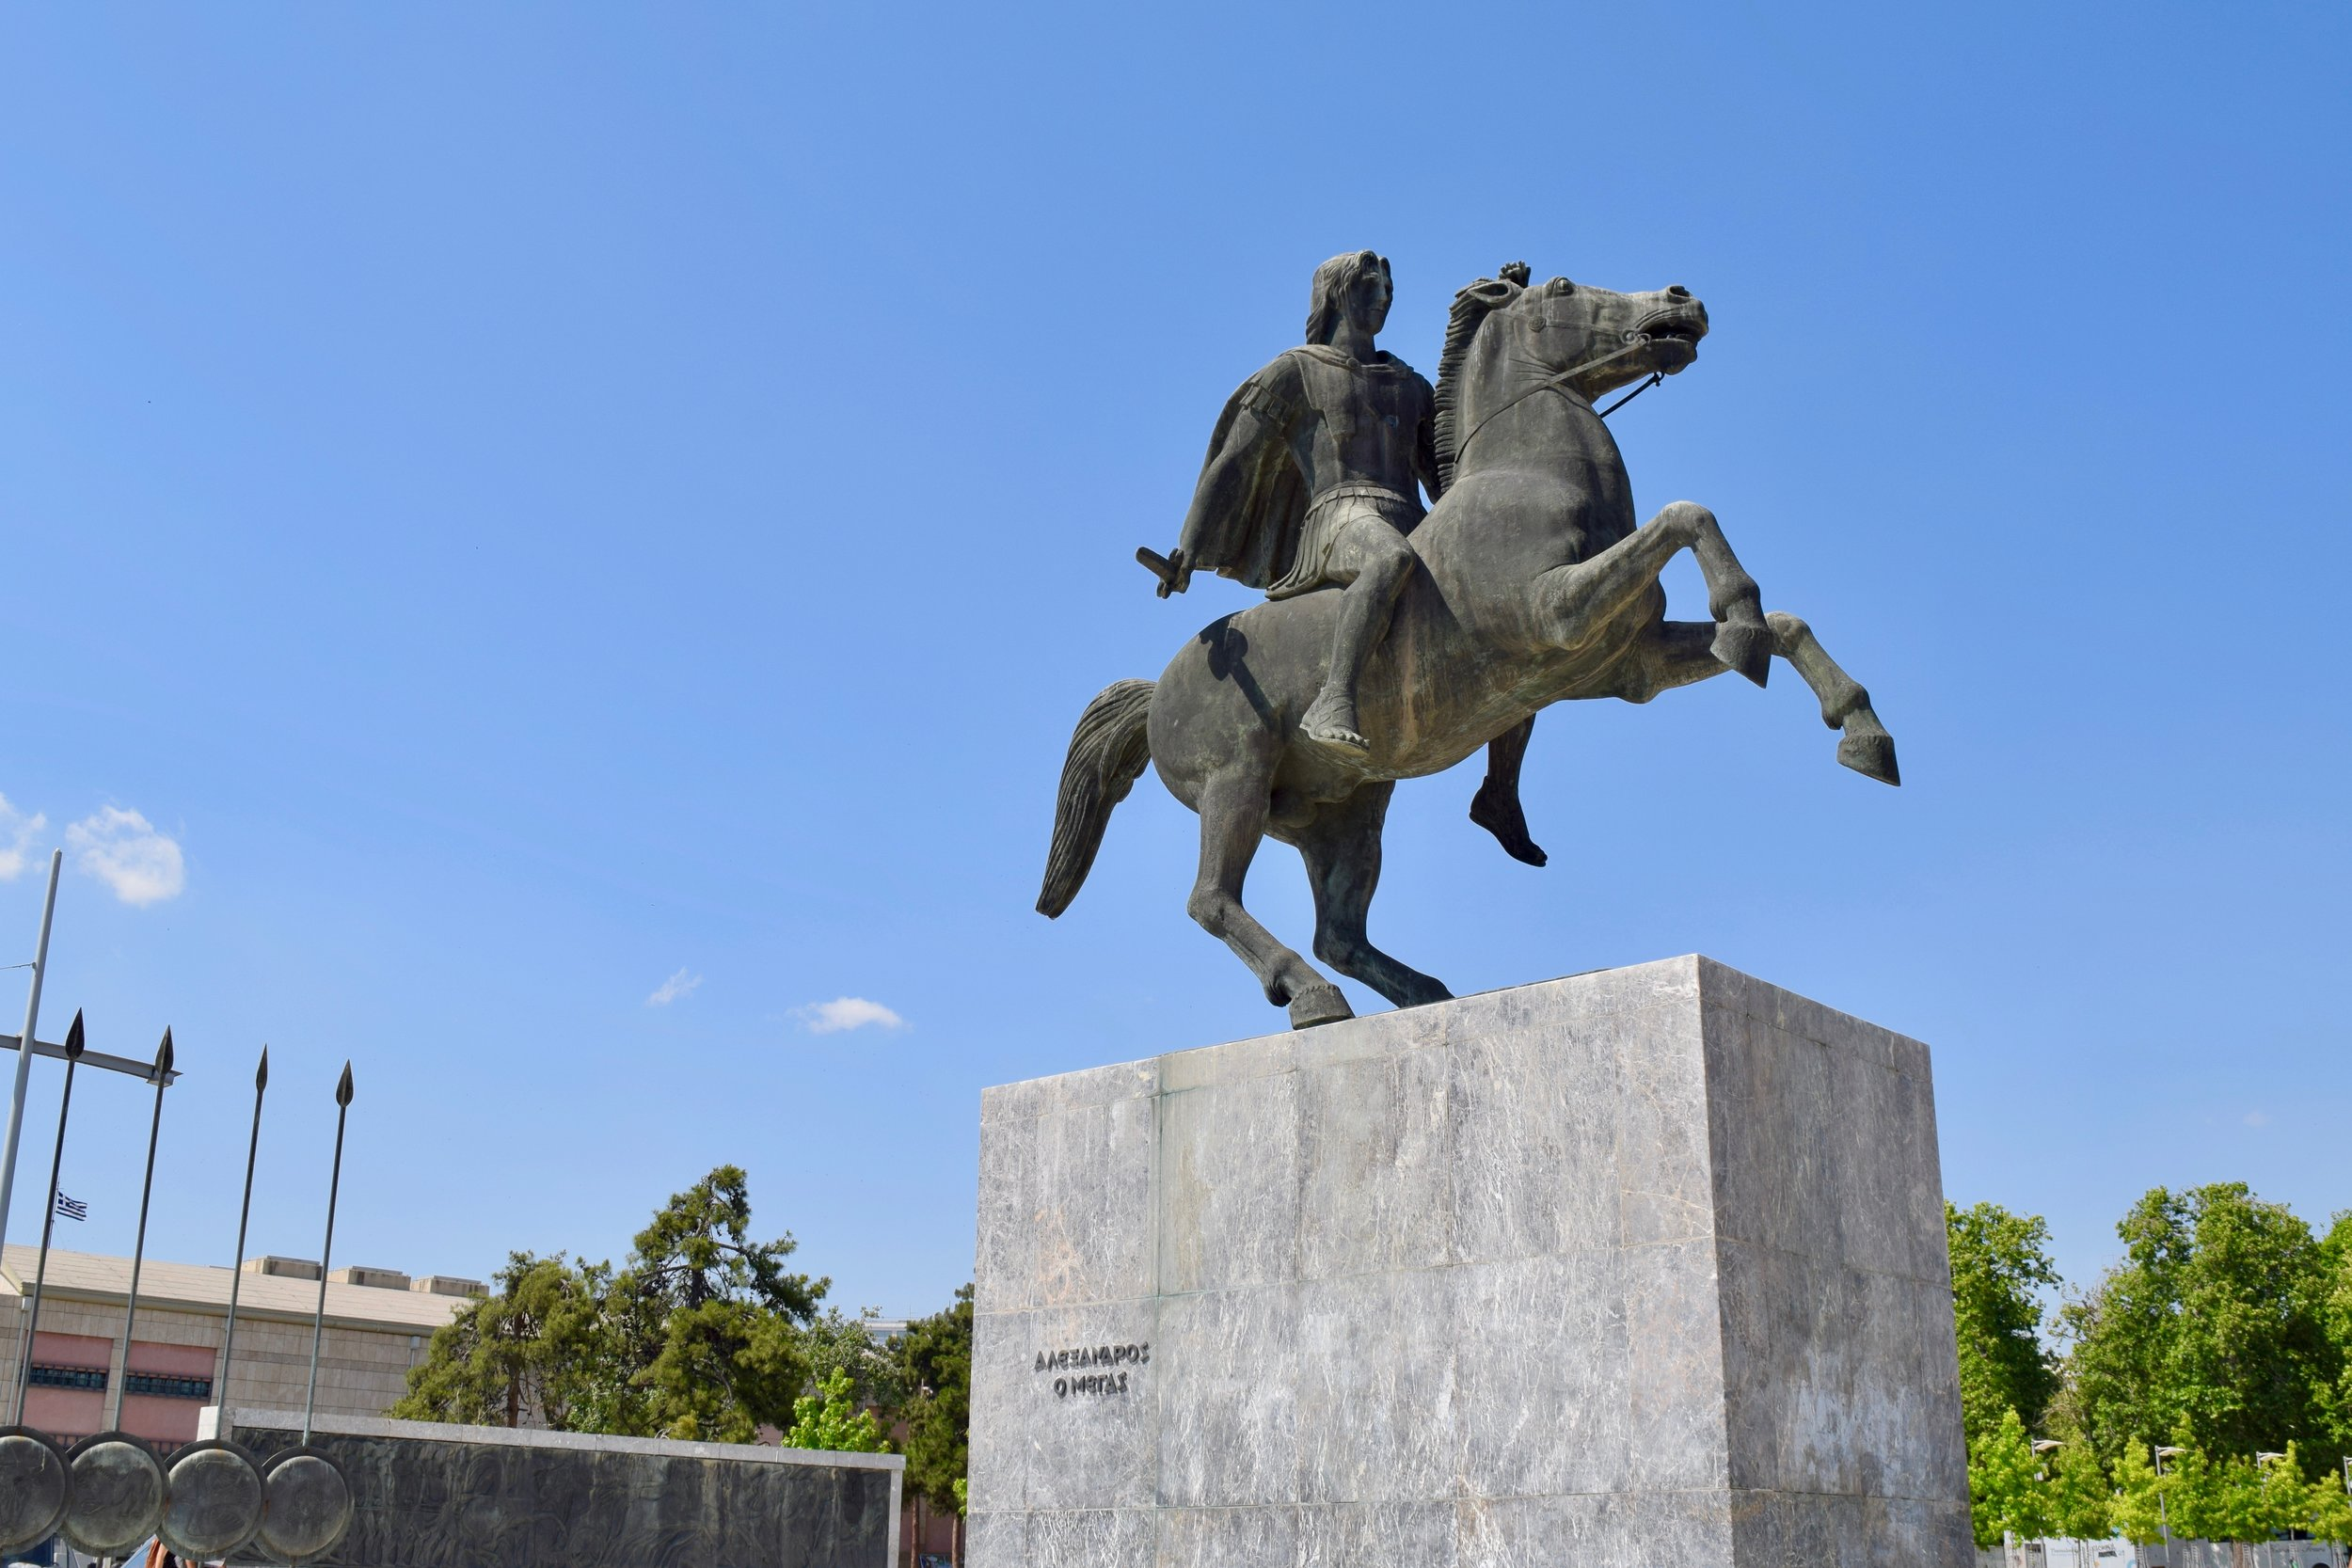 Equestrian statue of Alexander the Great